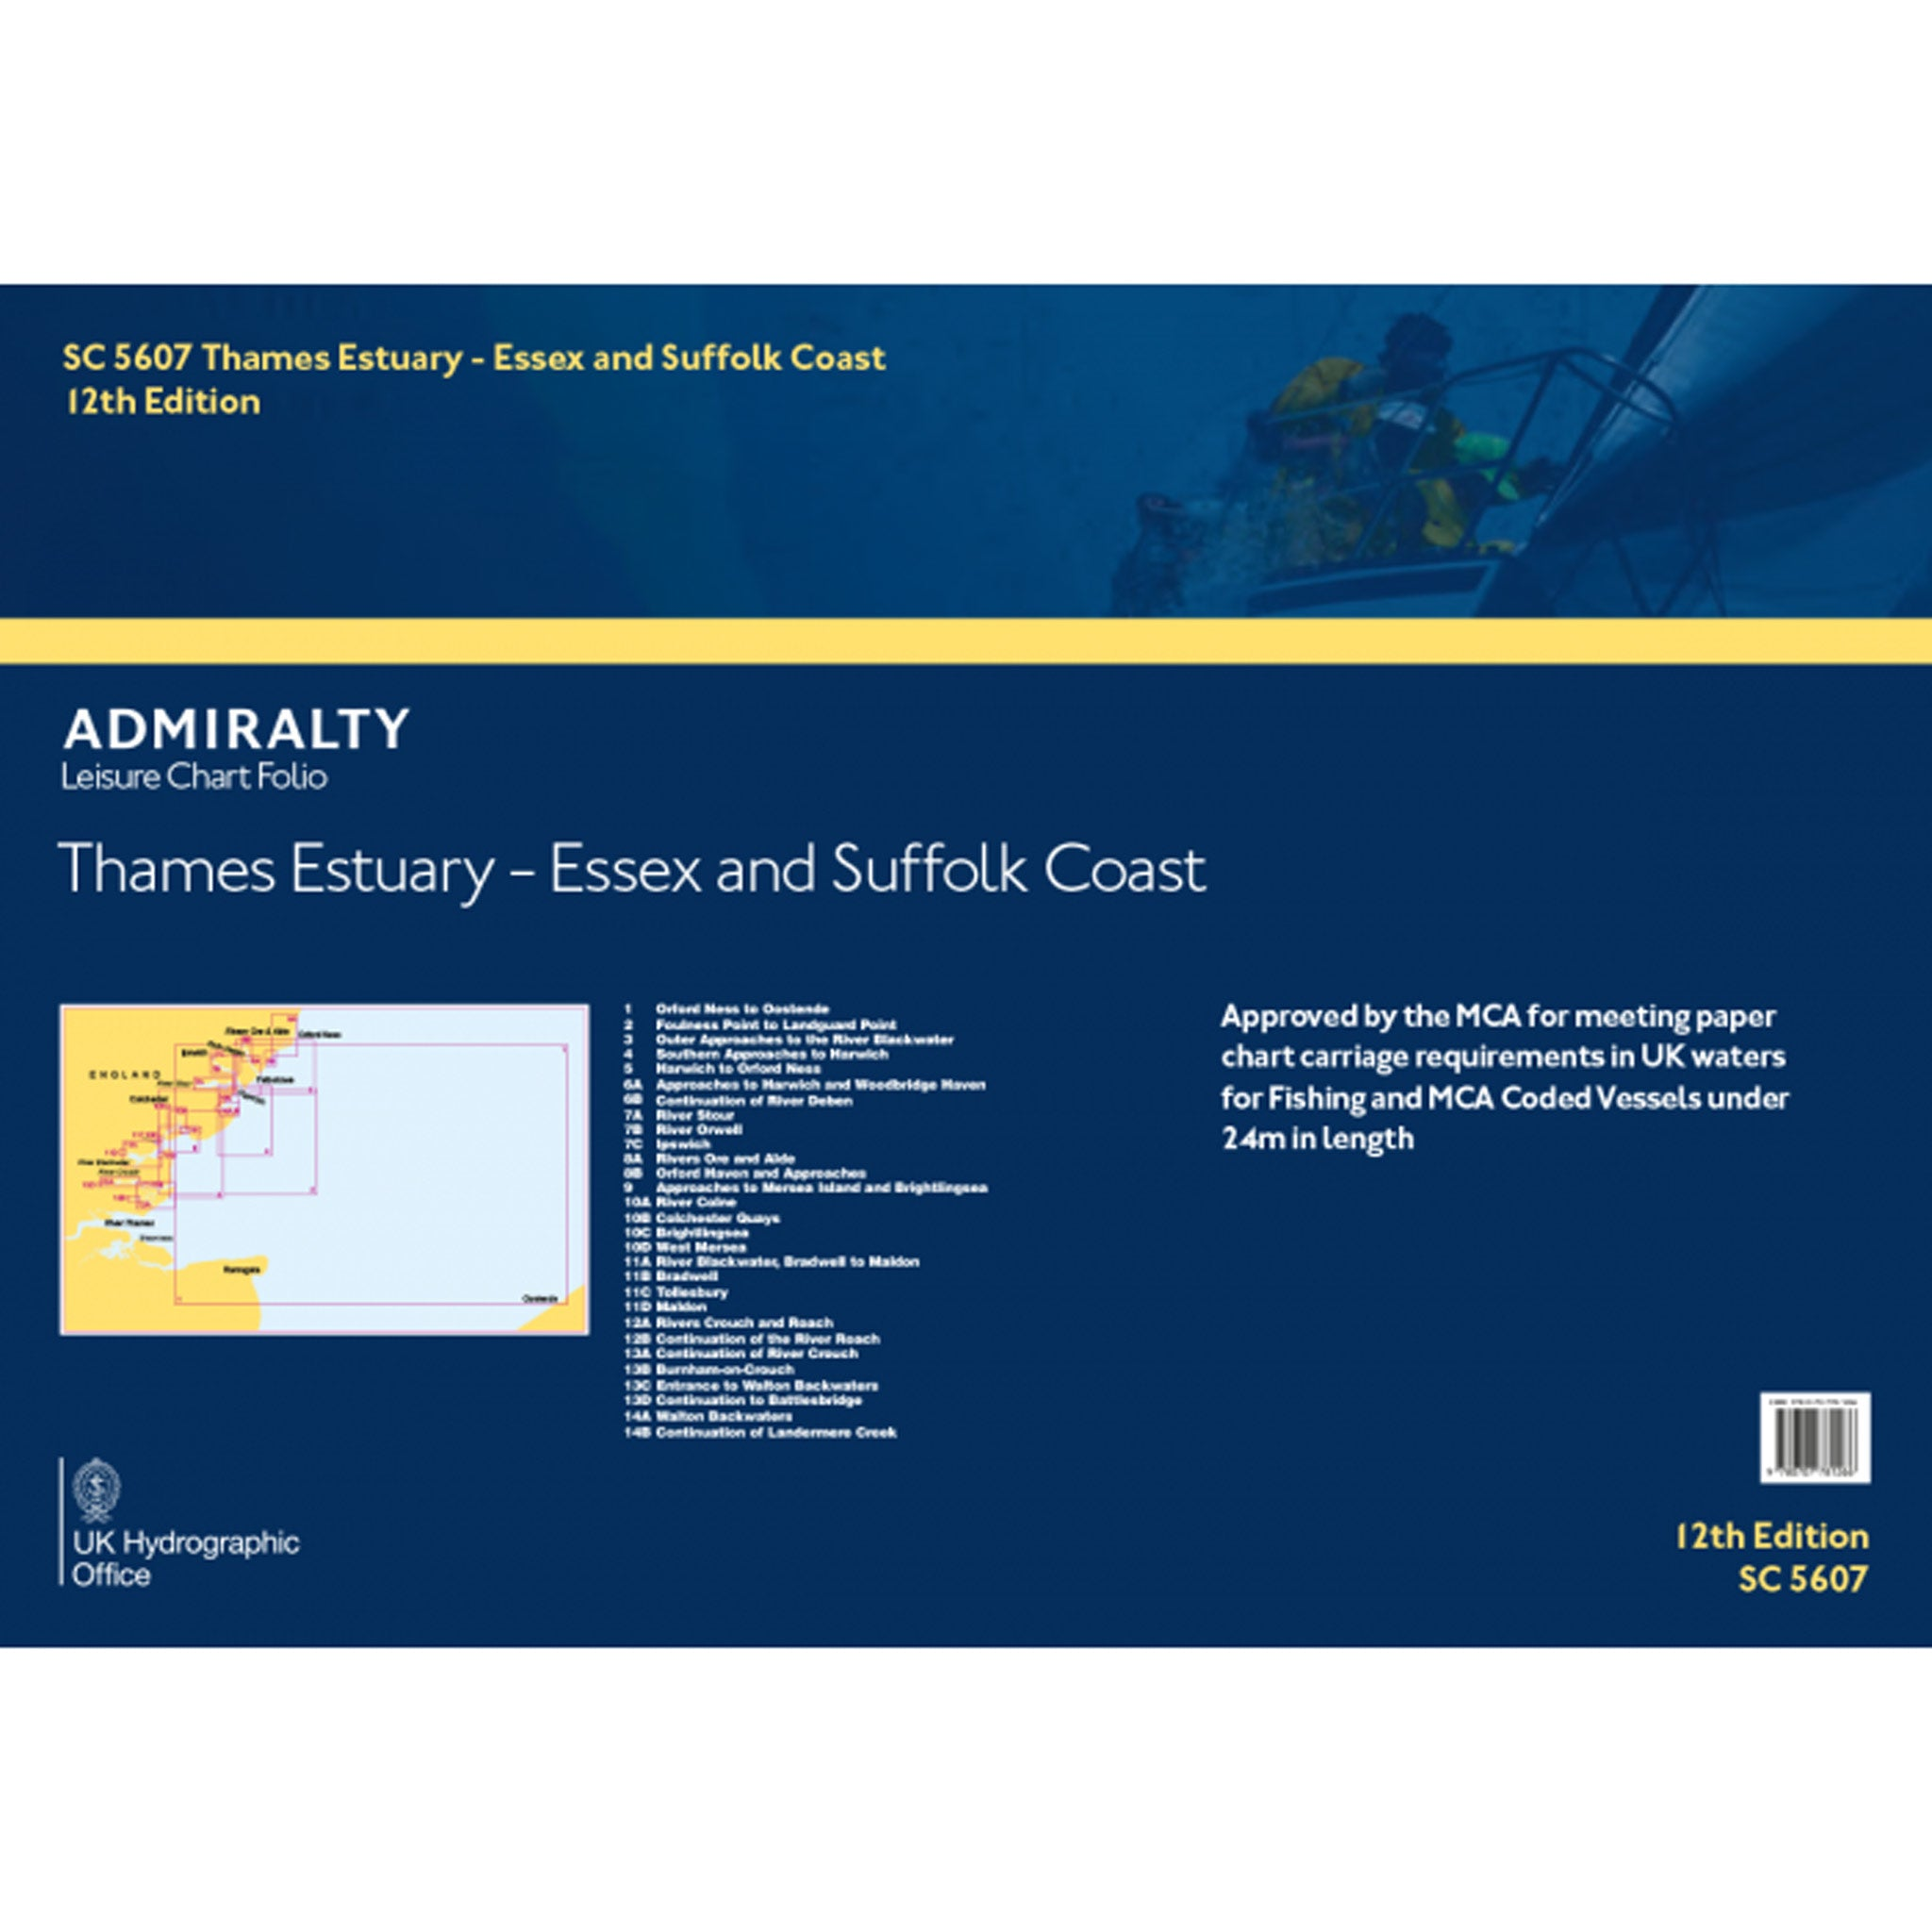 Admiralty Small Craft Folio SC5607 Thames Estuary, Essex and Suffolk Coasts